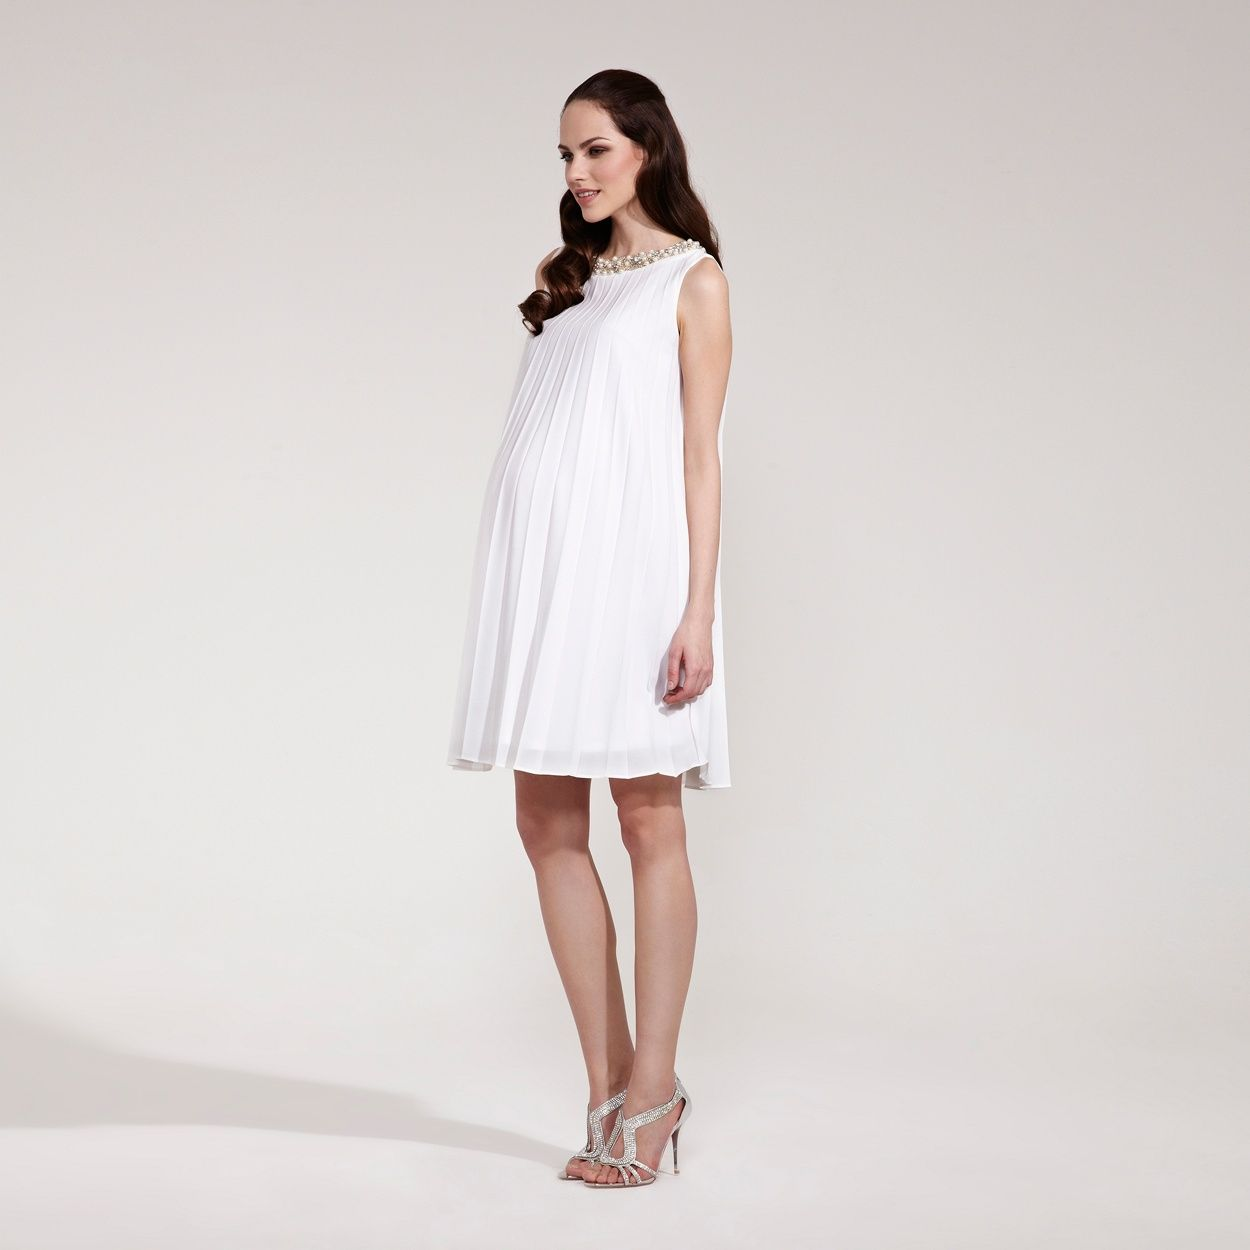 Rock a bye rosie cream sunray pleated maternity dress at rock a bye rosie cream sunray pleated maternity dress at debenhams ombrellifo Gallery